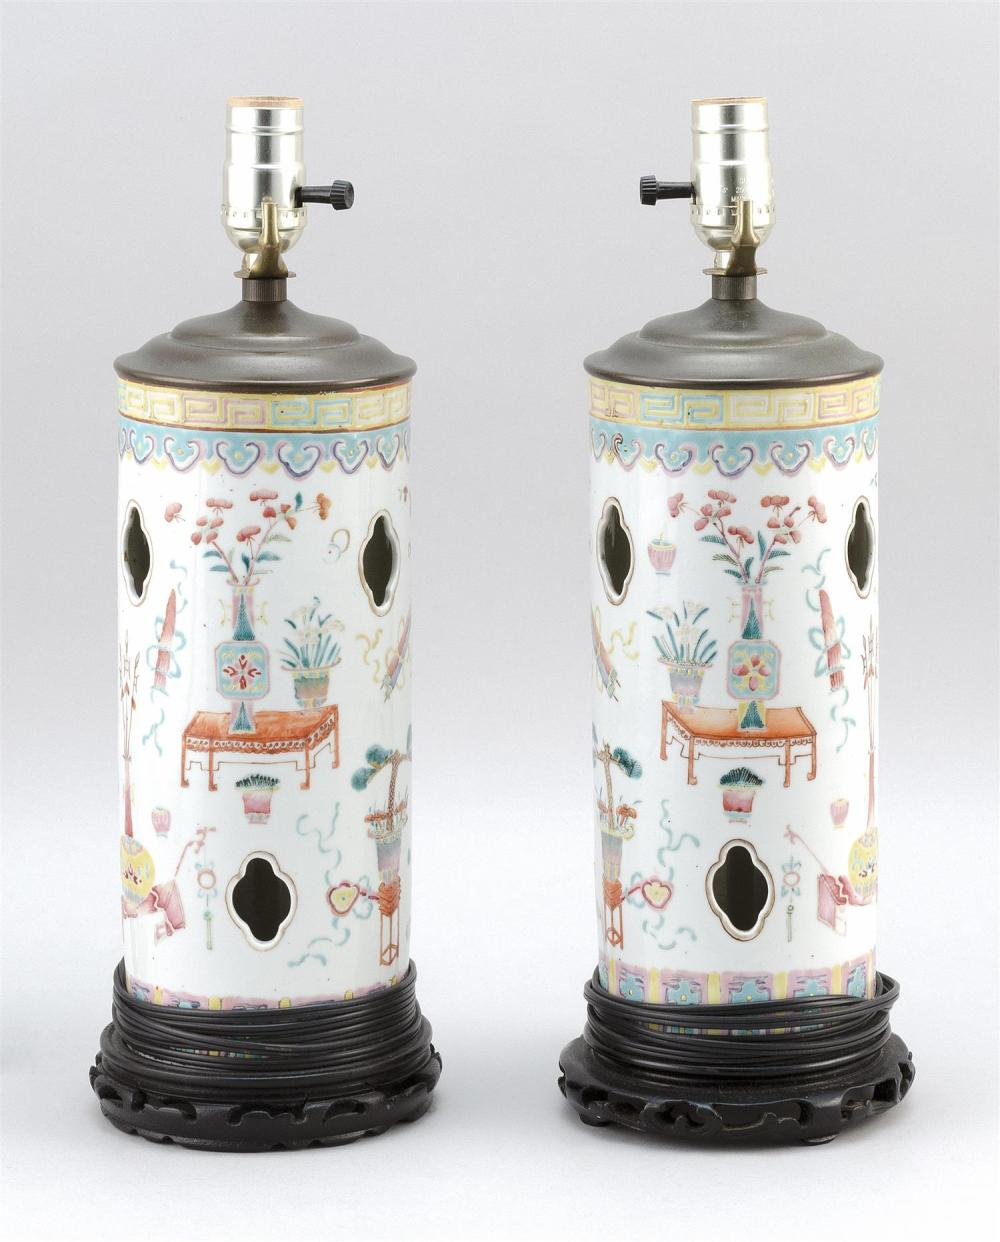 "PAIR OF CHINESE FAMILLE ROSE PORCELAIN HAT STANDS Decorated with scholar's objects, vases and jardinières. Heights 11"". Mounted as t.."